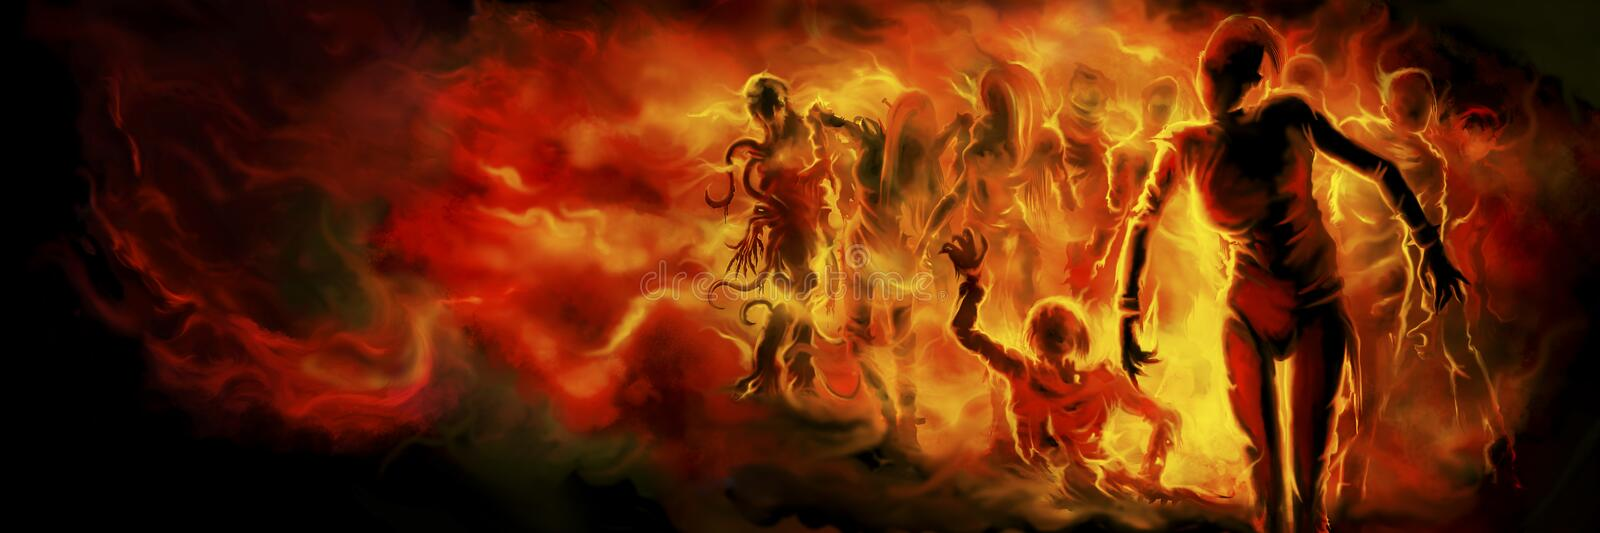 Zombies in fire banner royalty free illustration